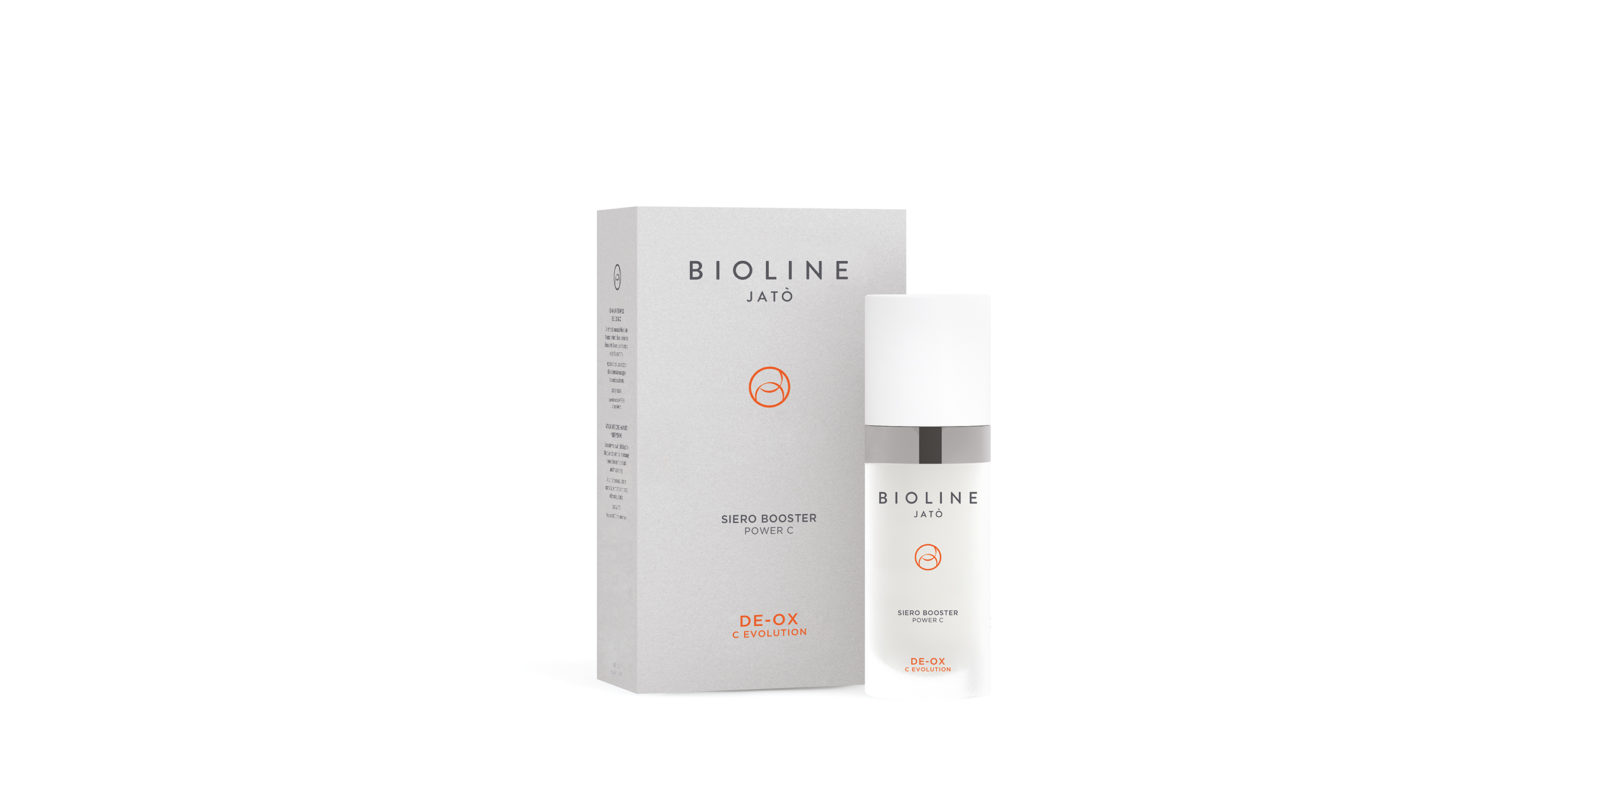 De-Ox C Evolution Booster Serum - Bioline Jatò